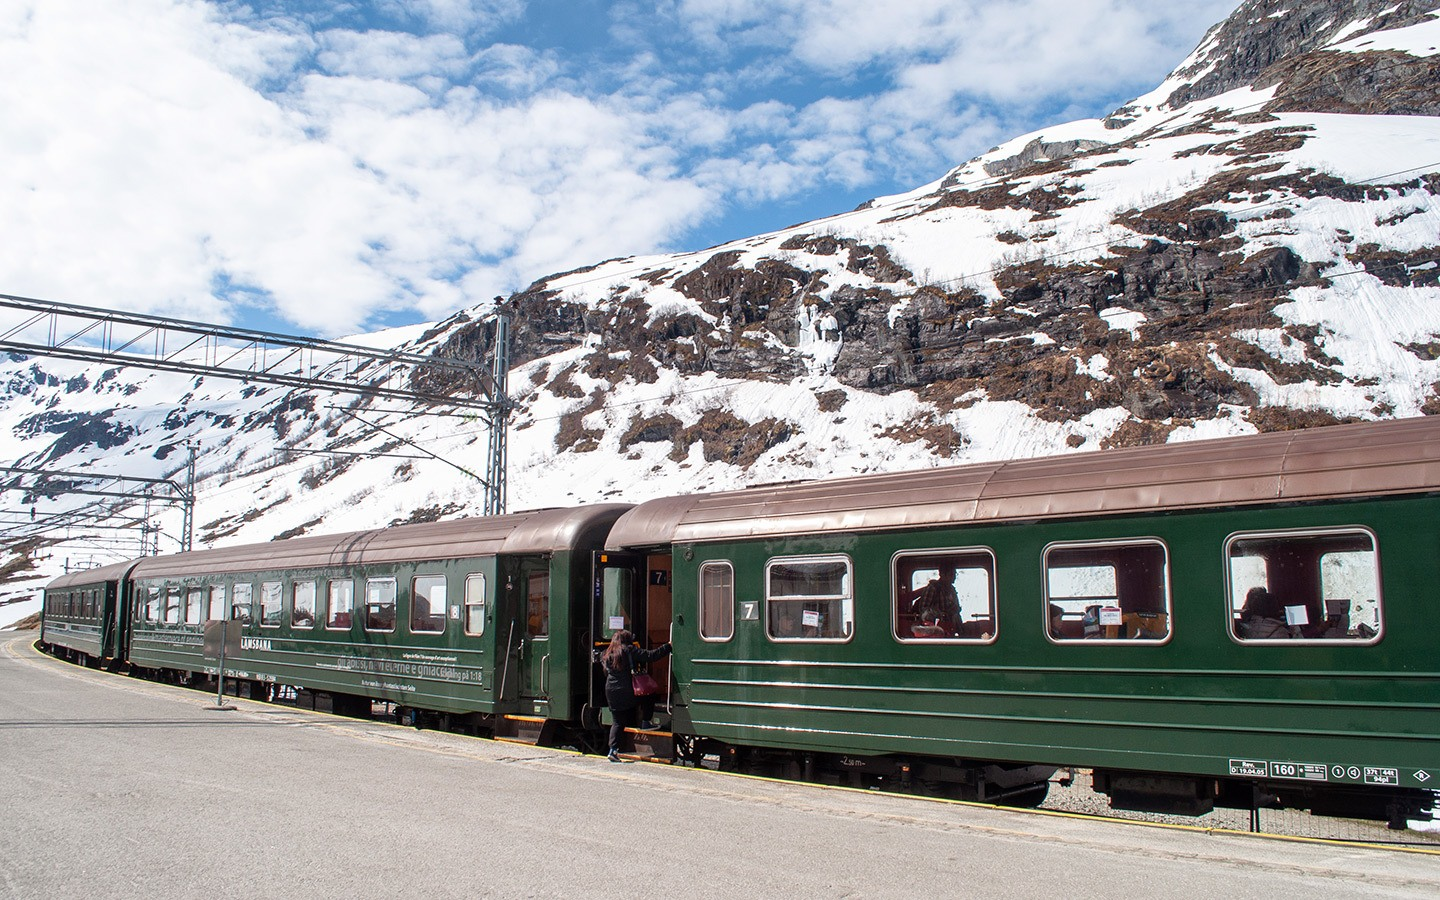 The Flåmsbana scenic train at Myrdal station